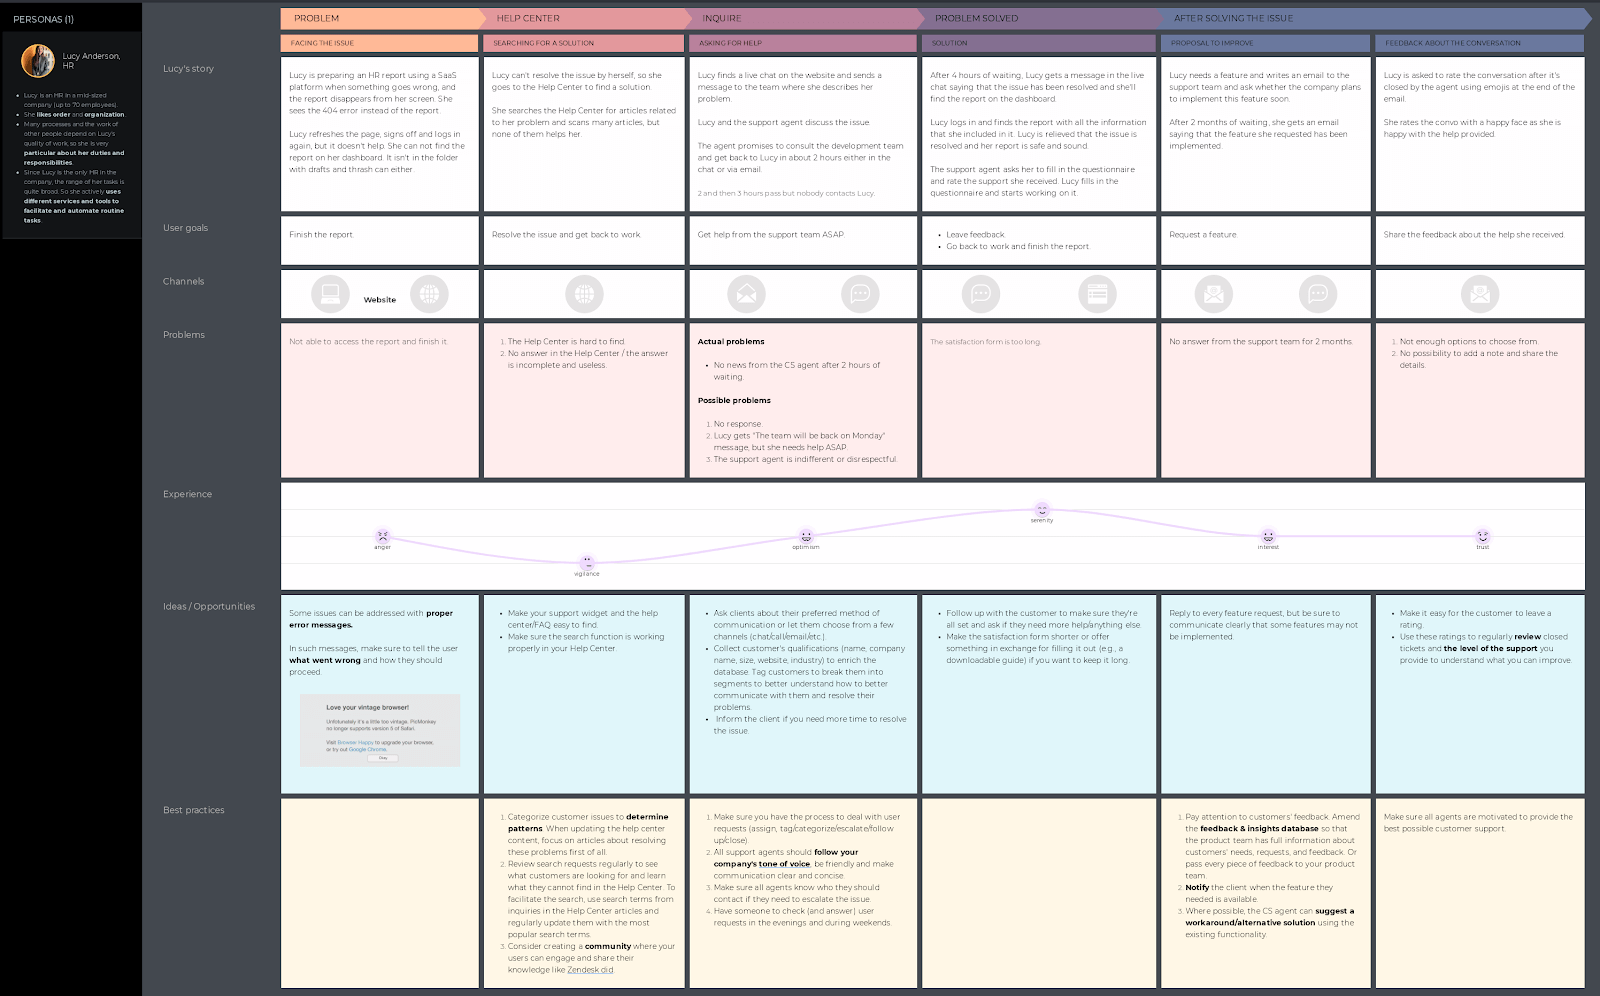 saas support customer journey map template from uxpressia